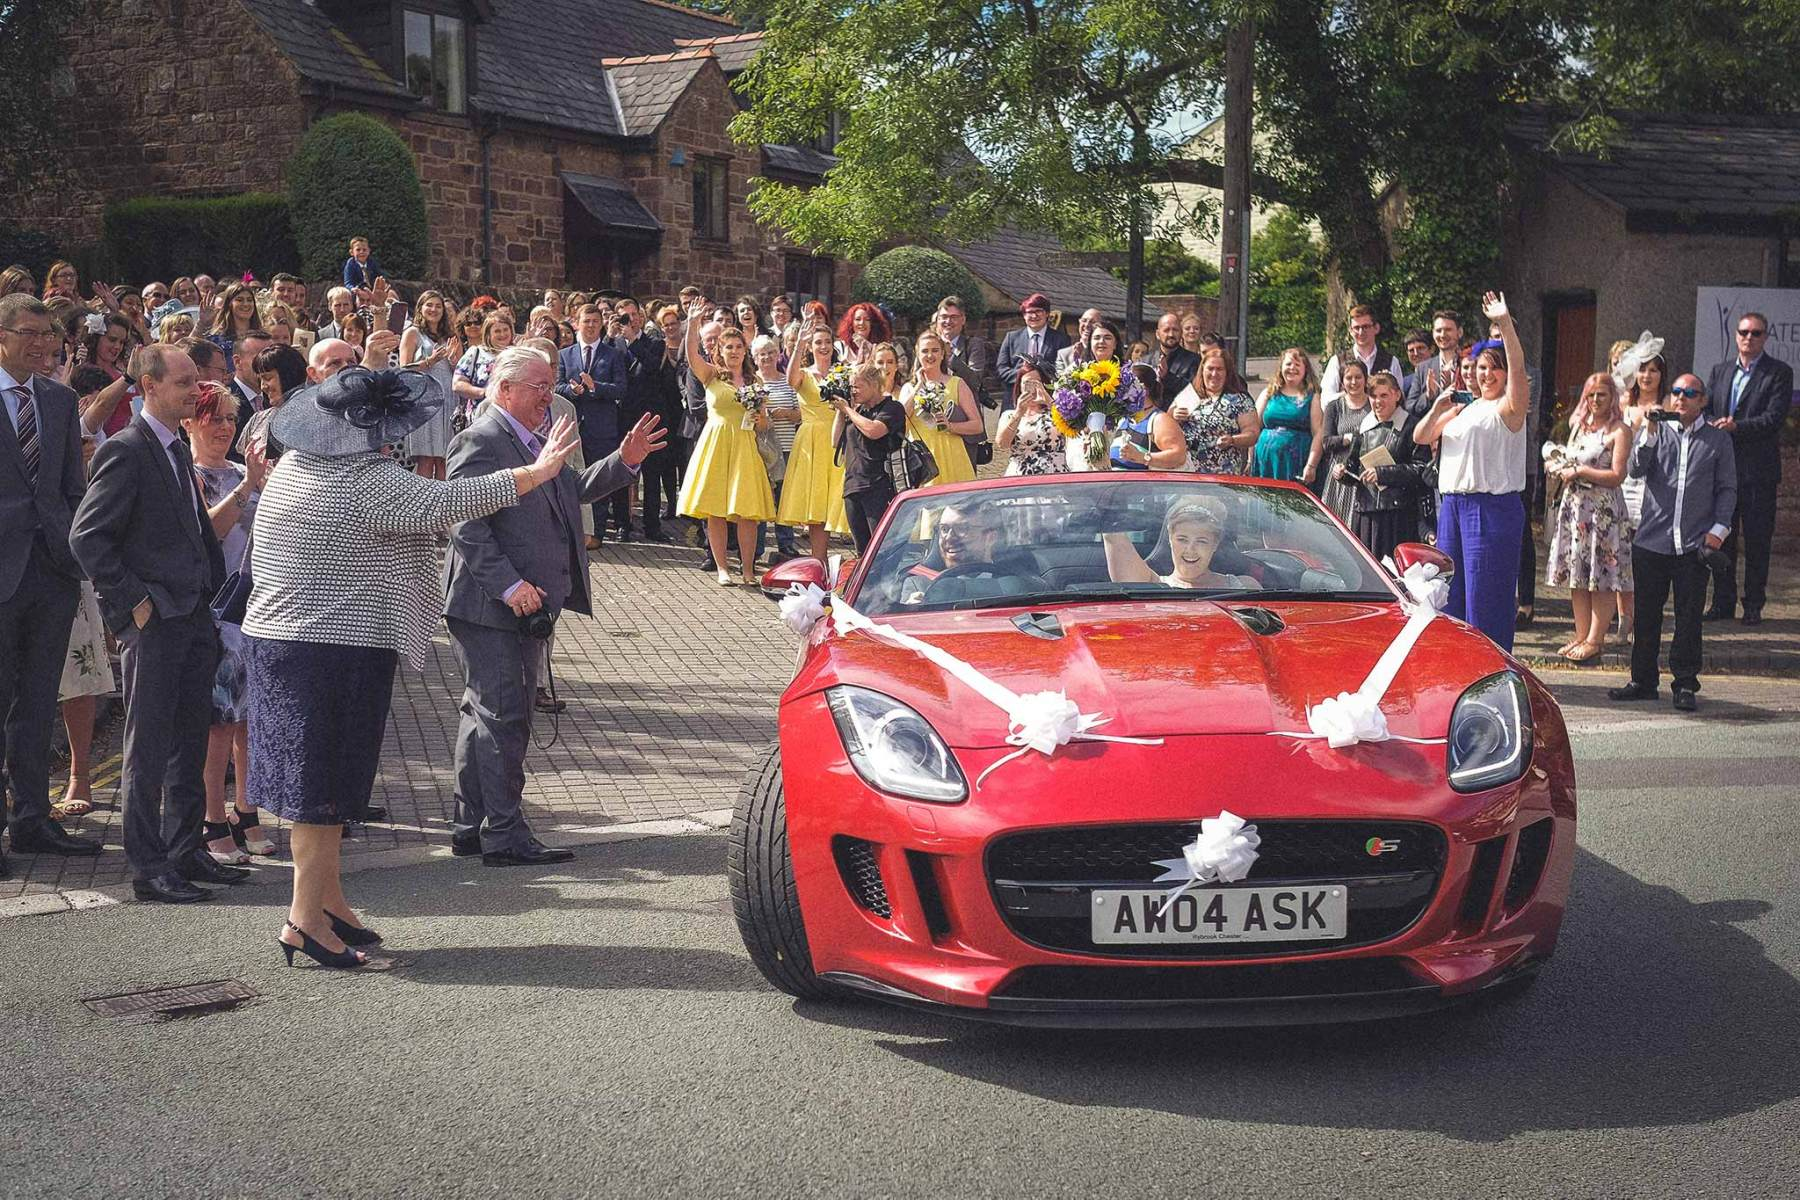 Wirral Wedding Photographer - bride and groom in car